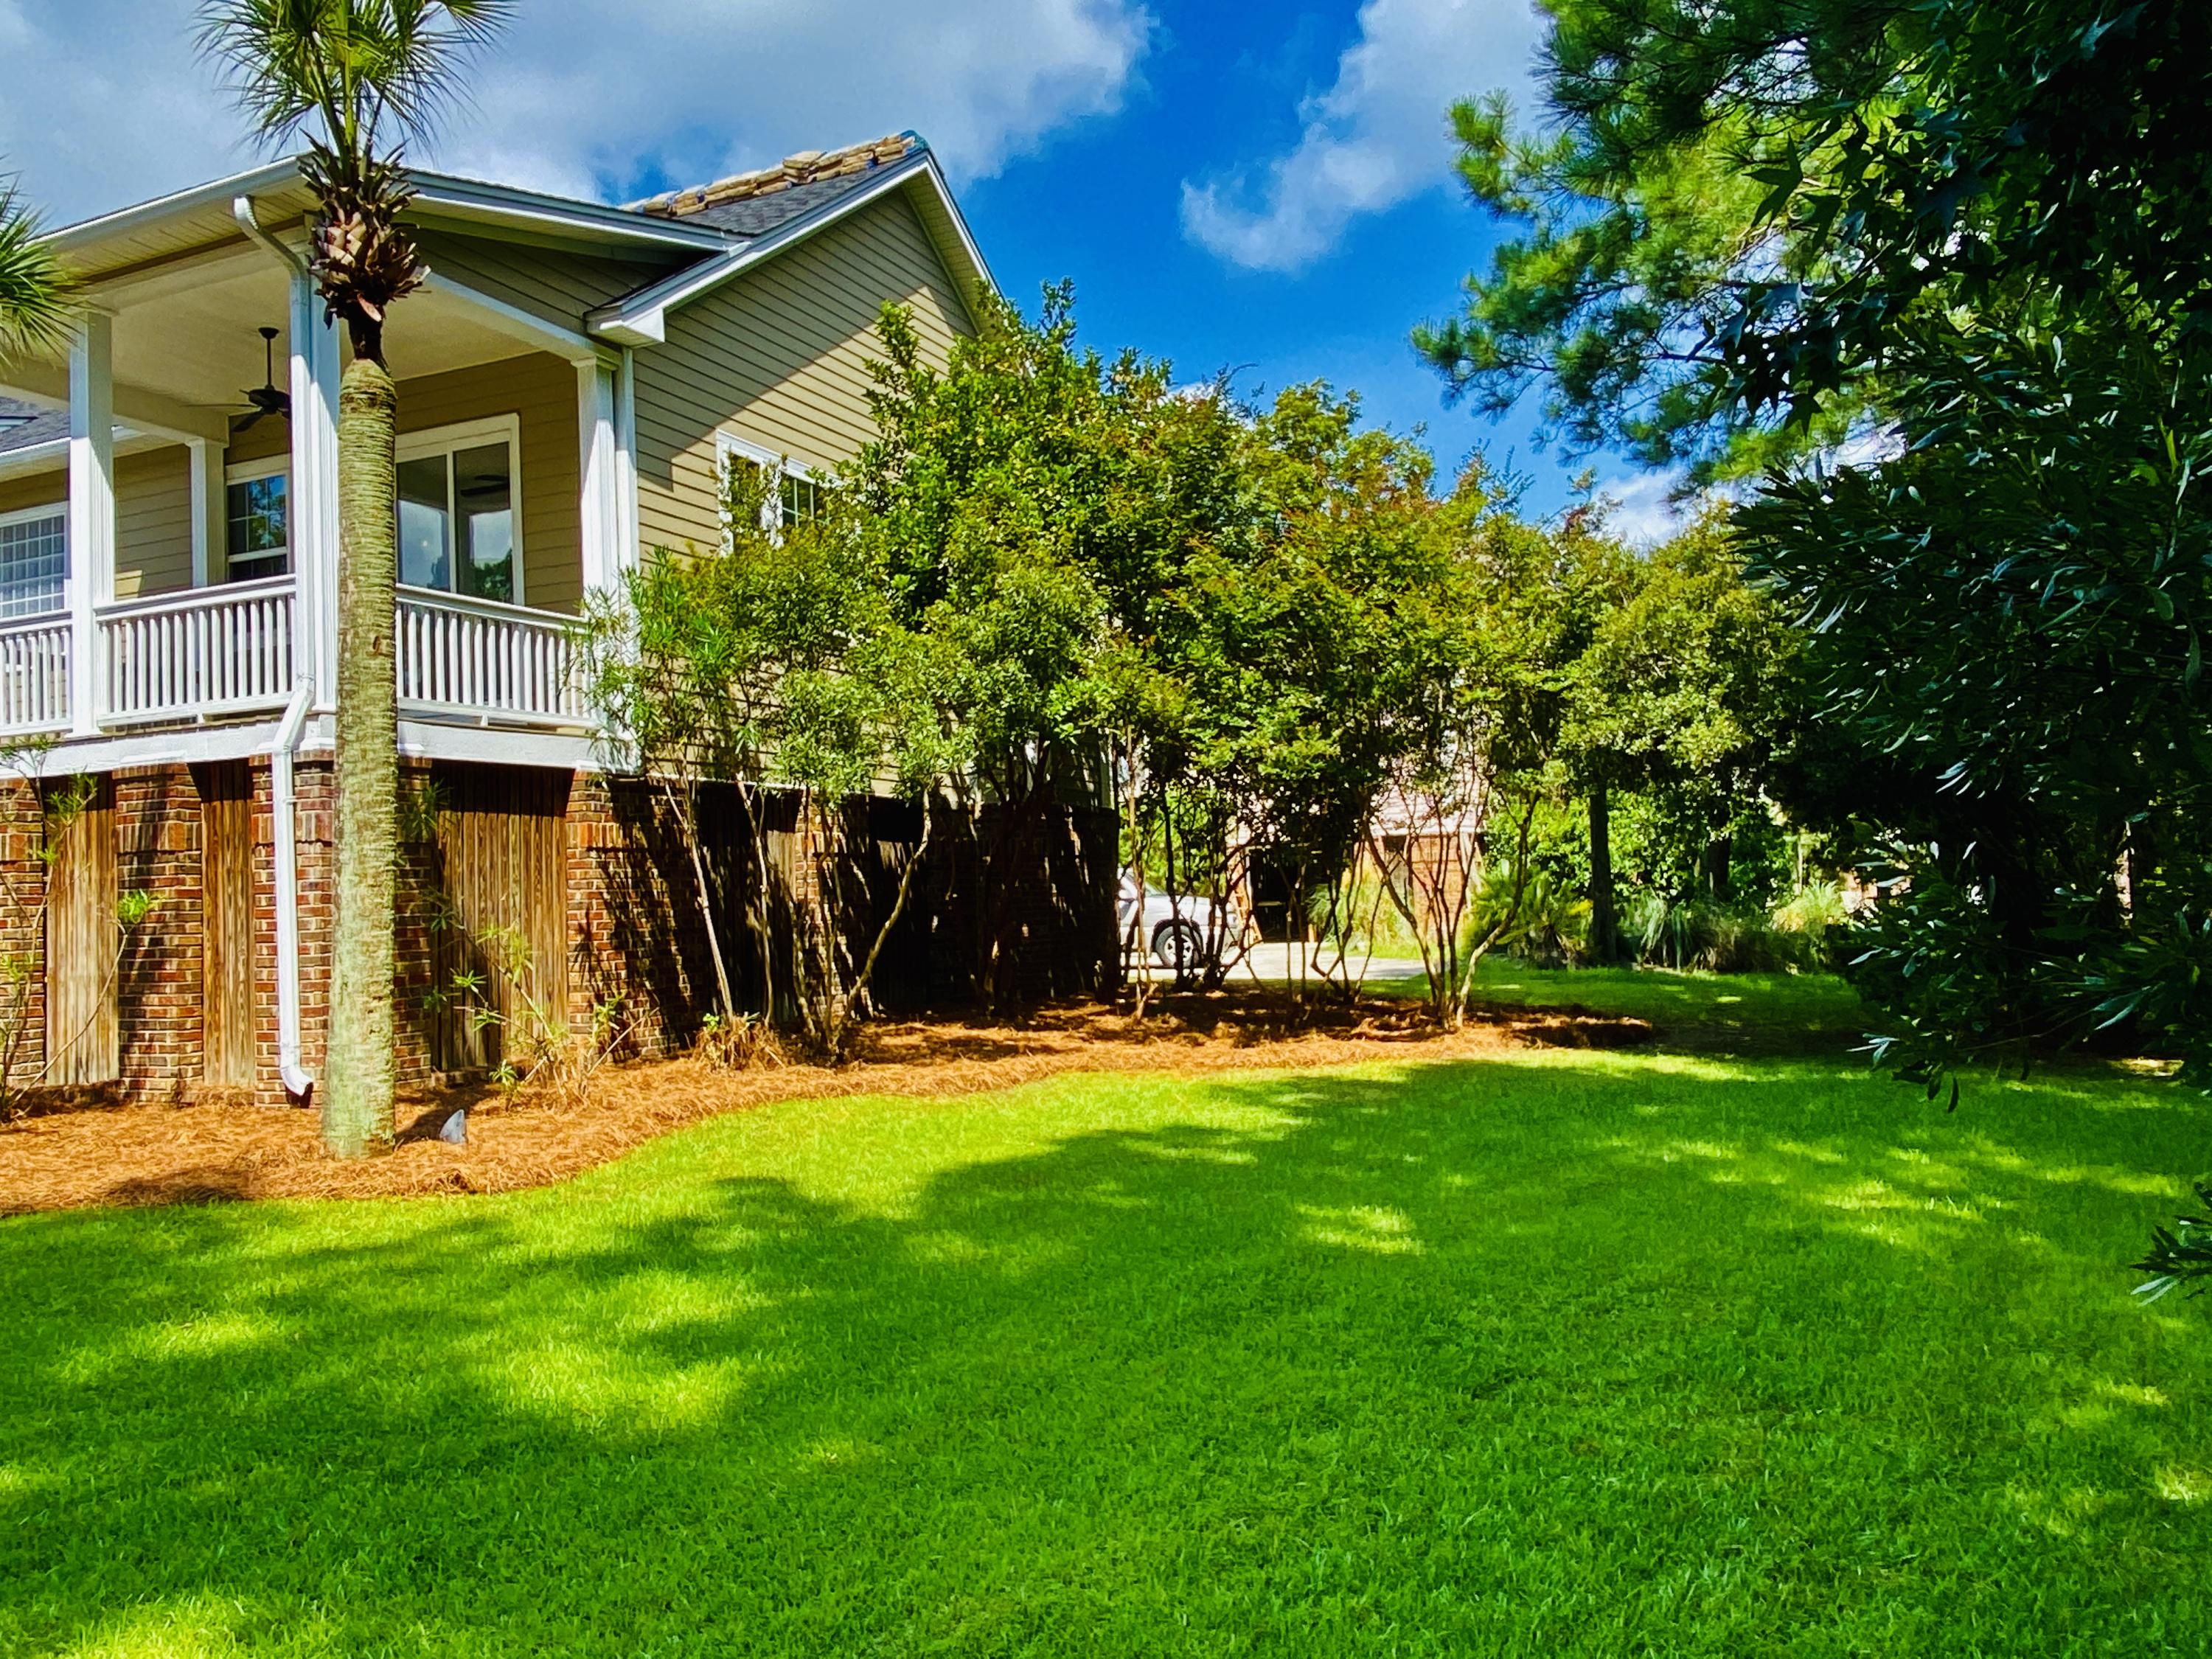 Rivertowne Country Club Homes For Sale - 1721 Rivertowne Country Club, Mount Pleasant, SC - 6